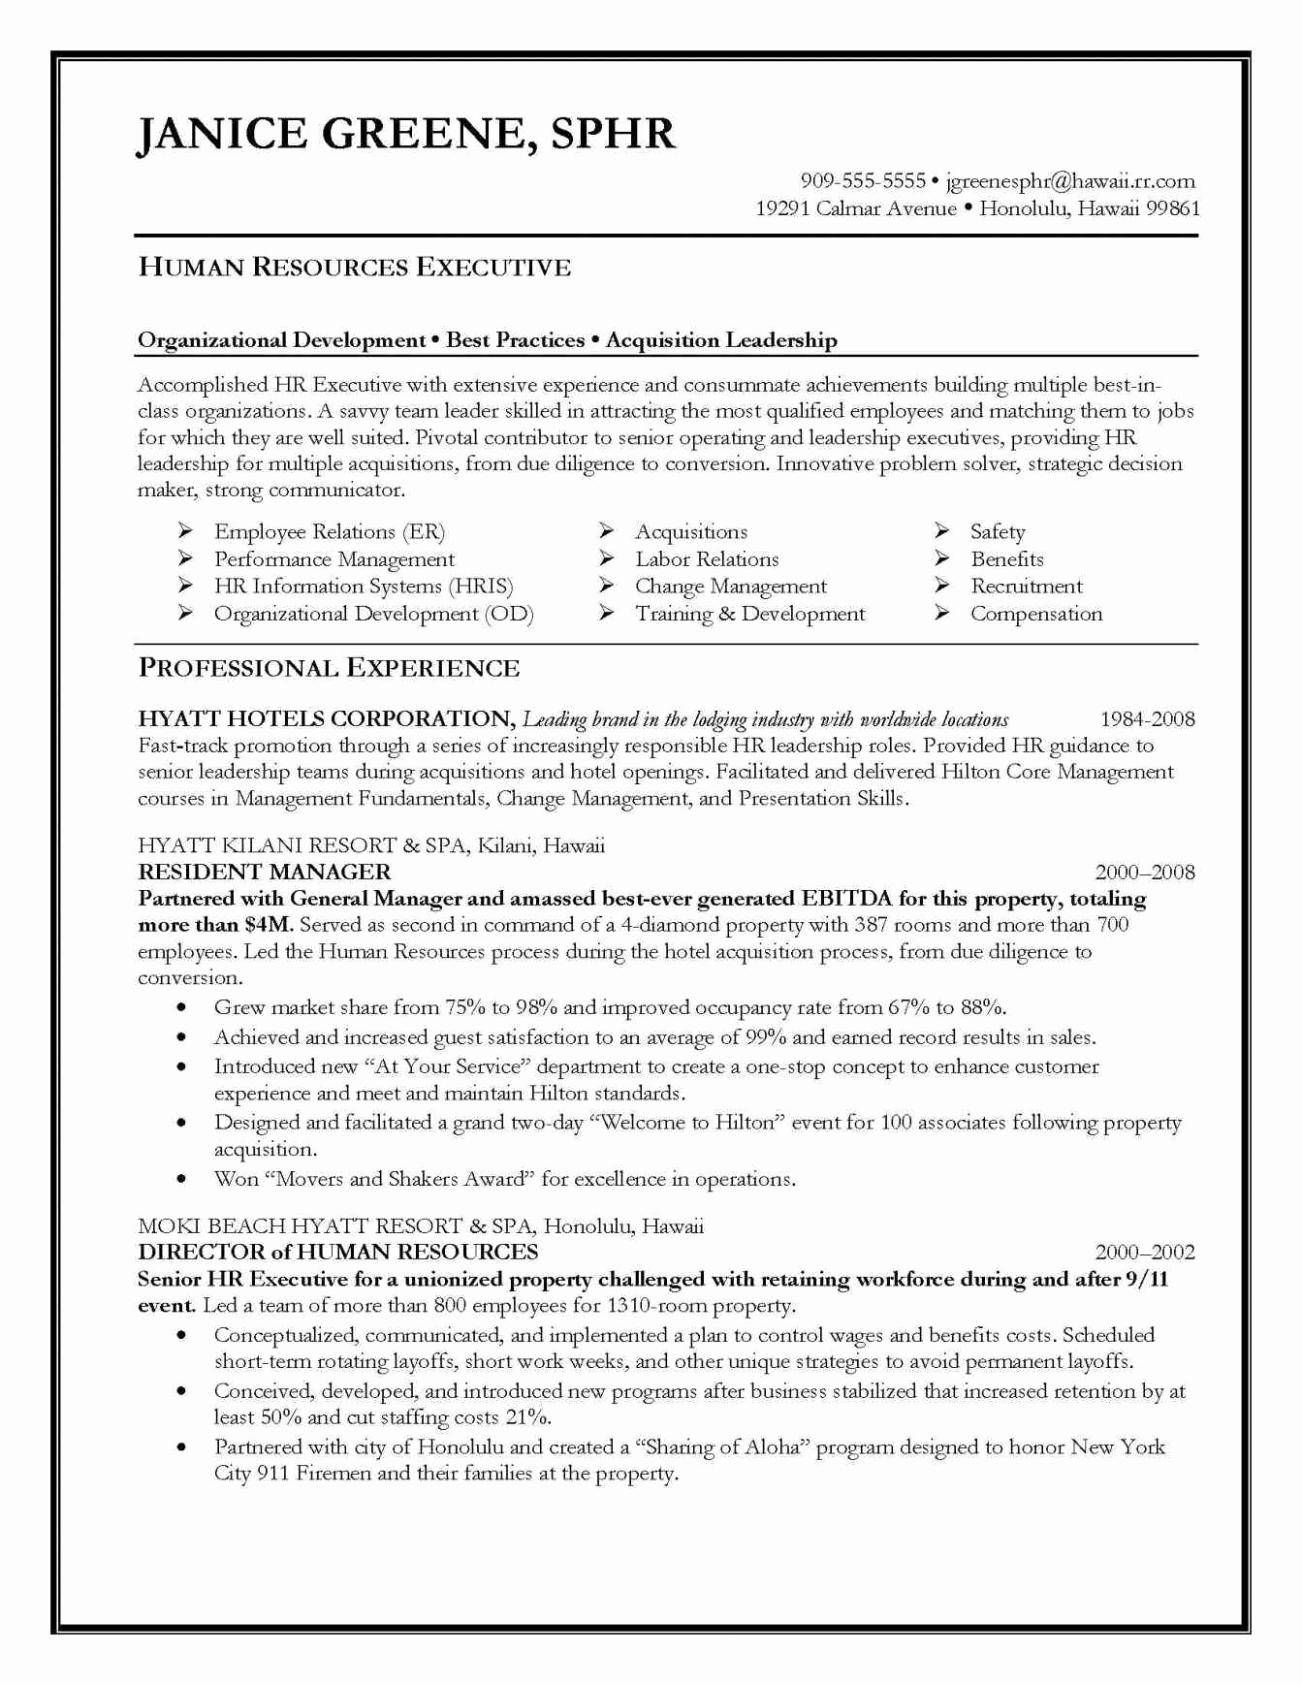 Resume Objective Examples Career Change